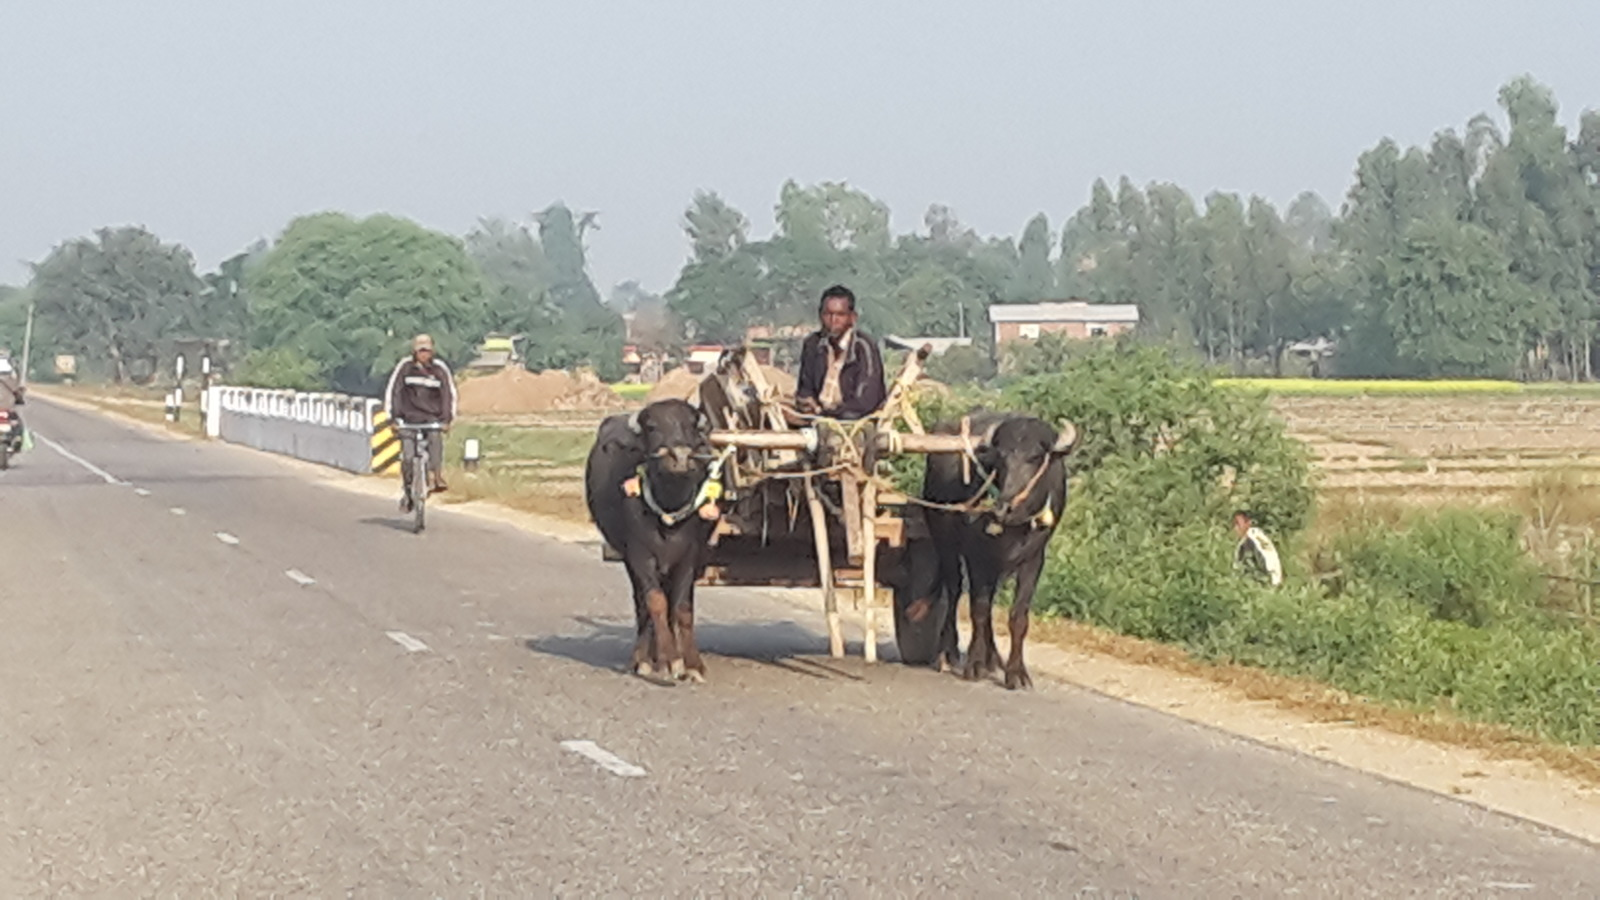 Ox and cart